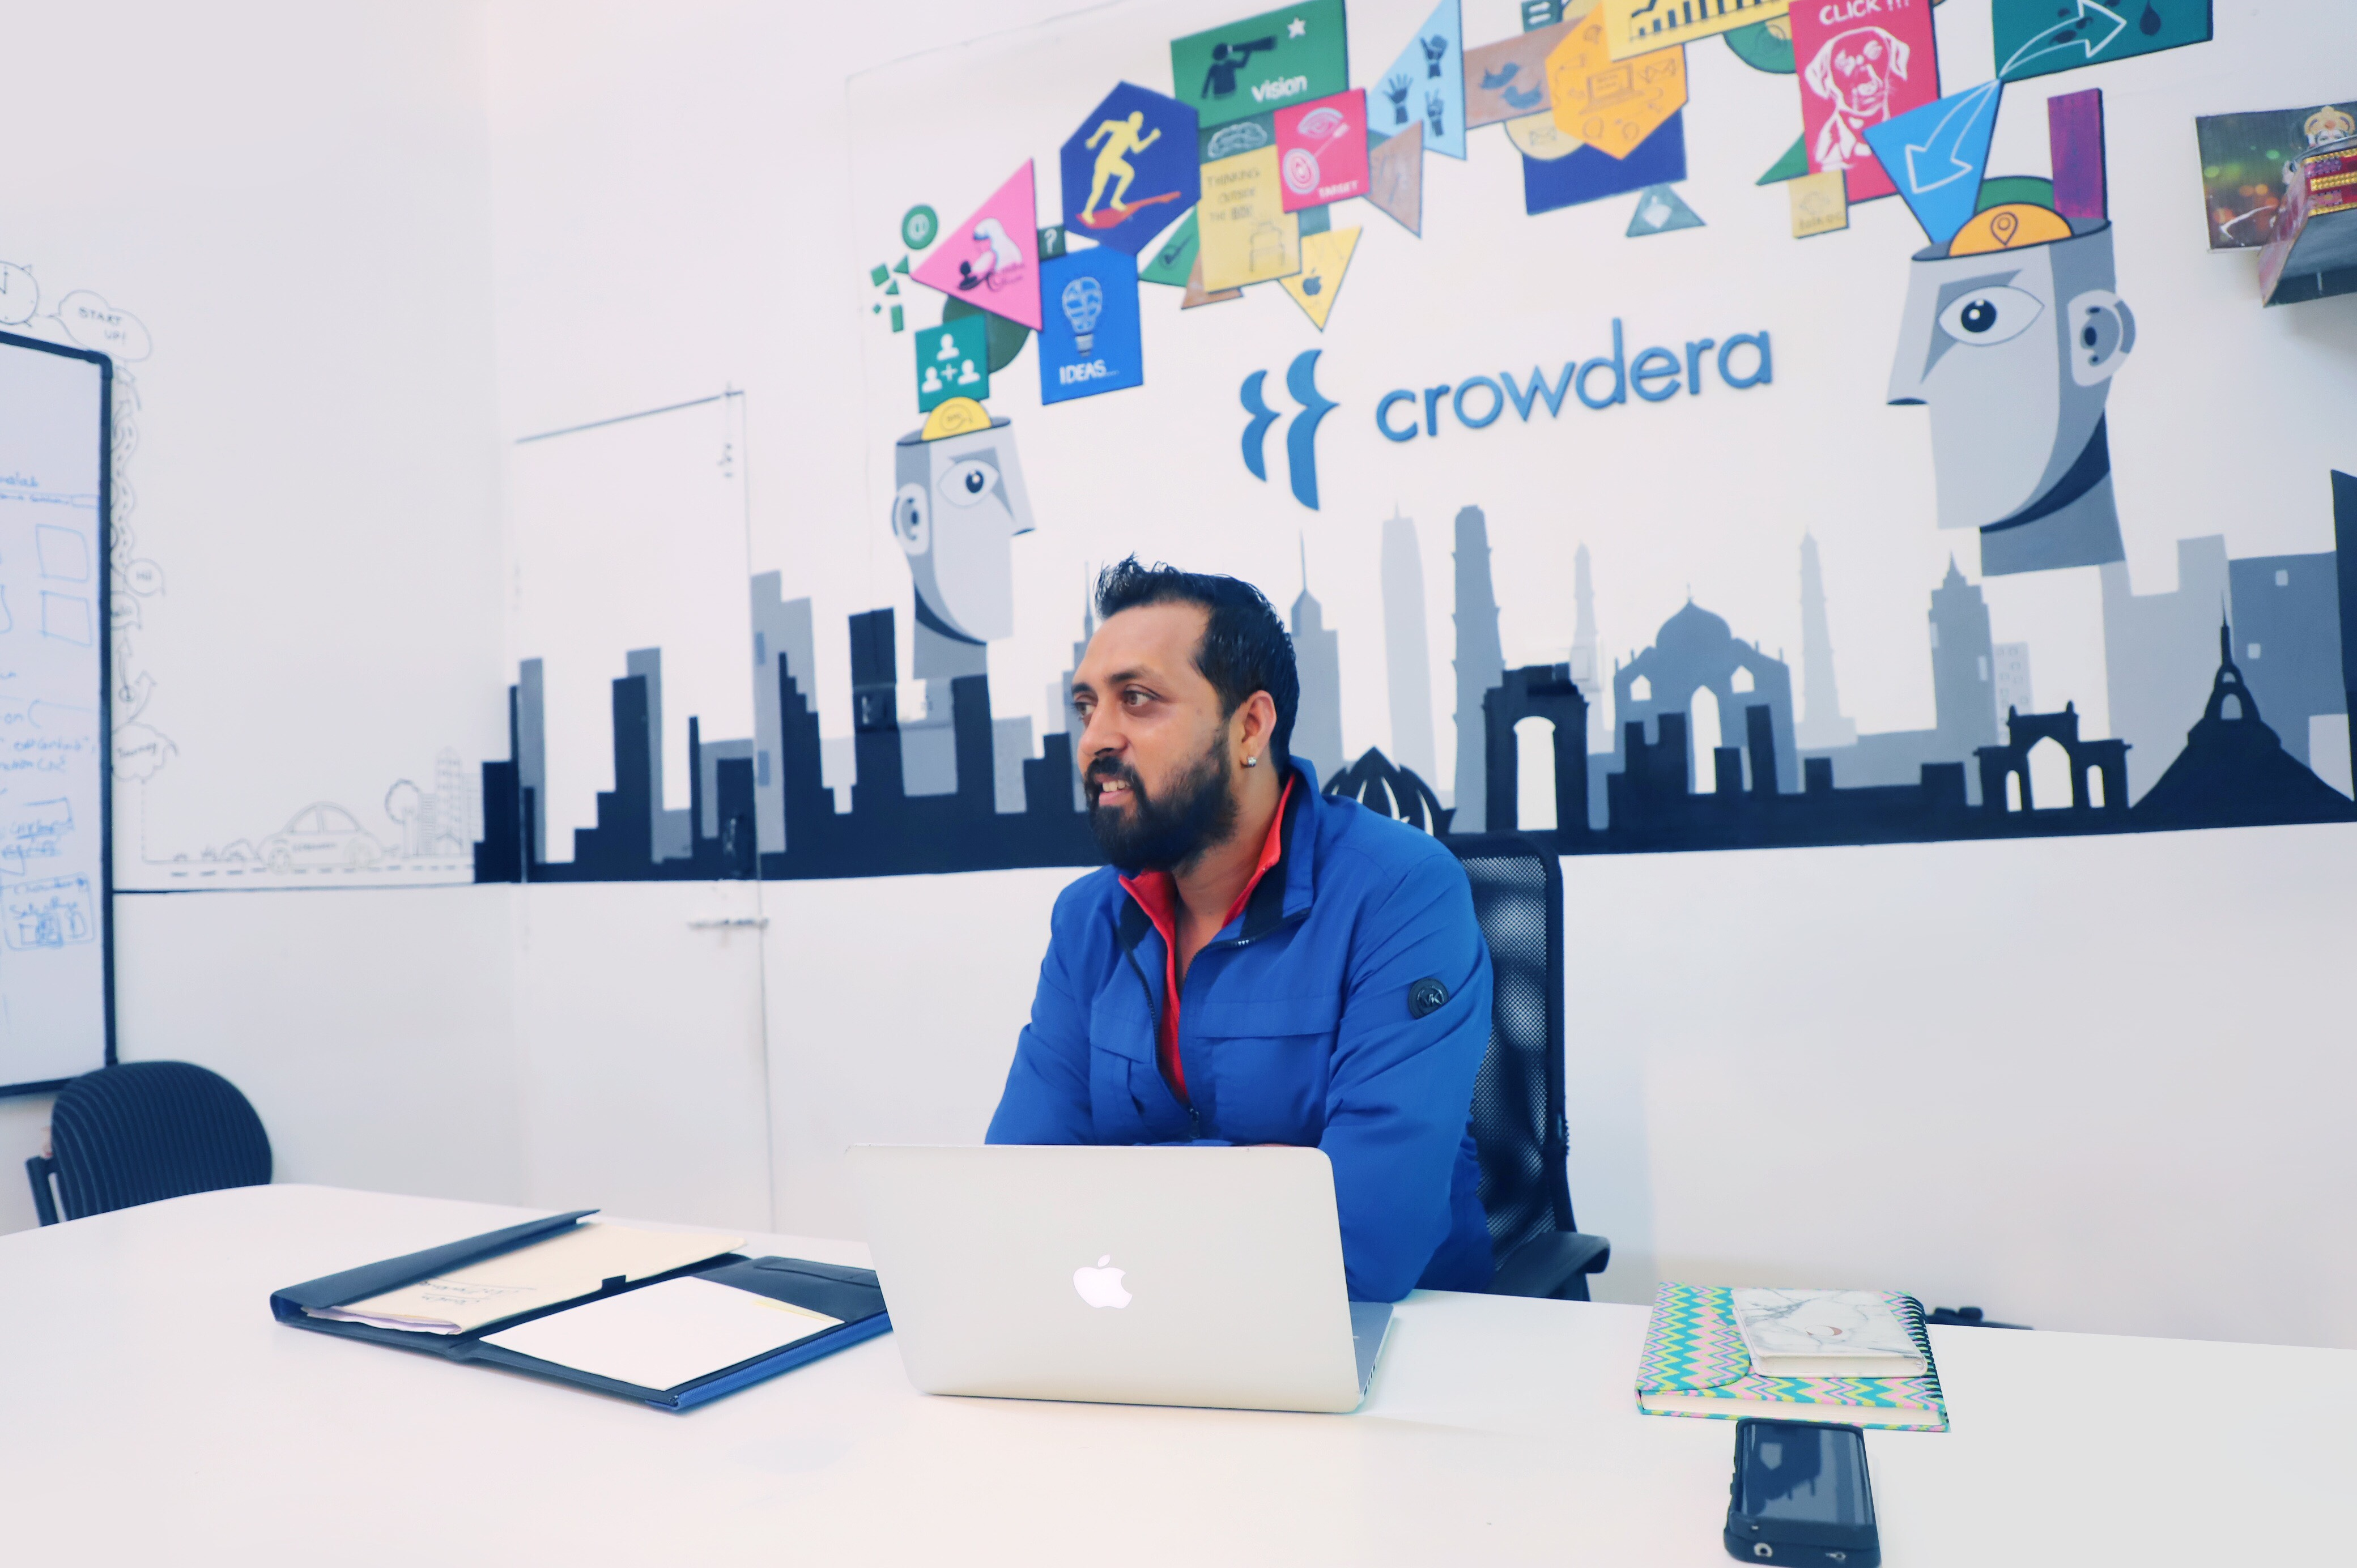 dreams that matter: Crowdera is a platform that caters to organizations and individuals for raising money